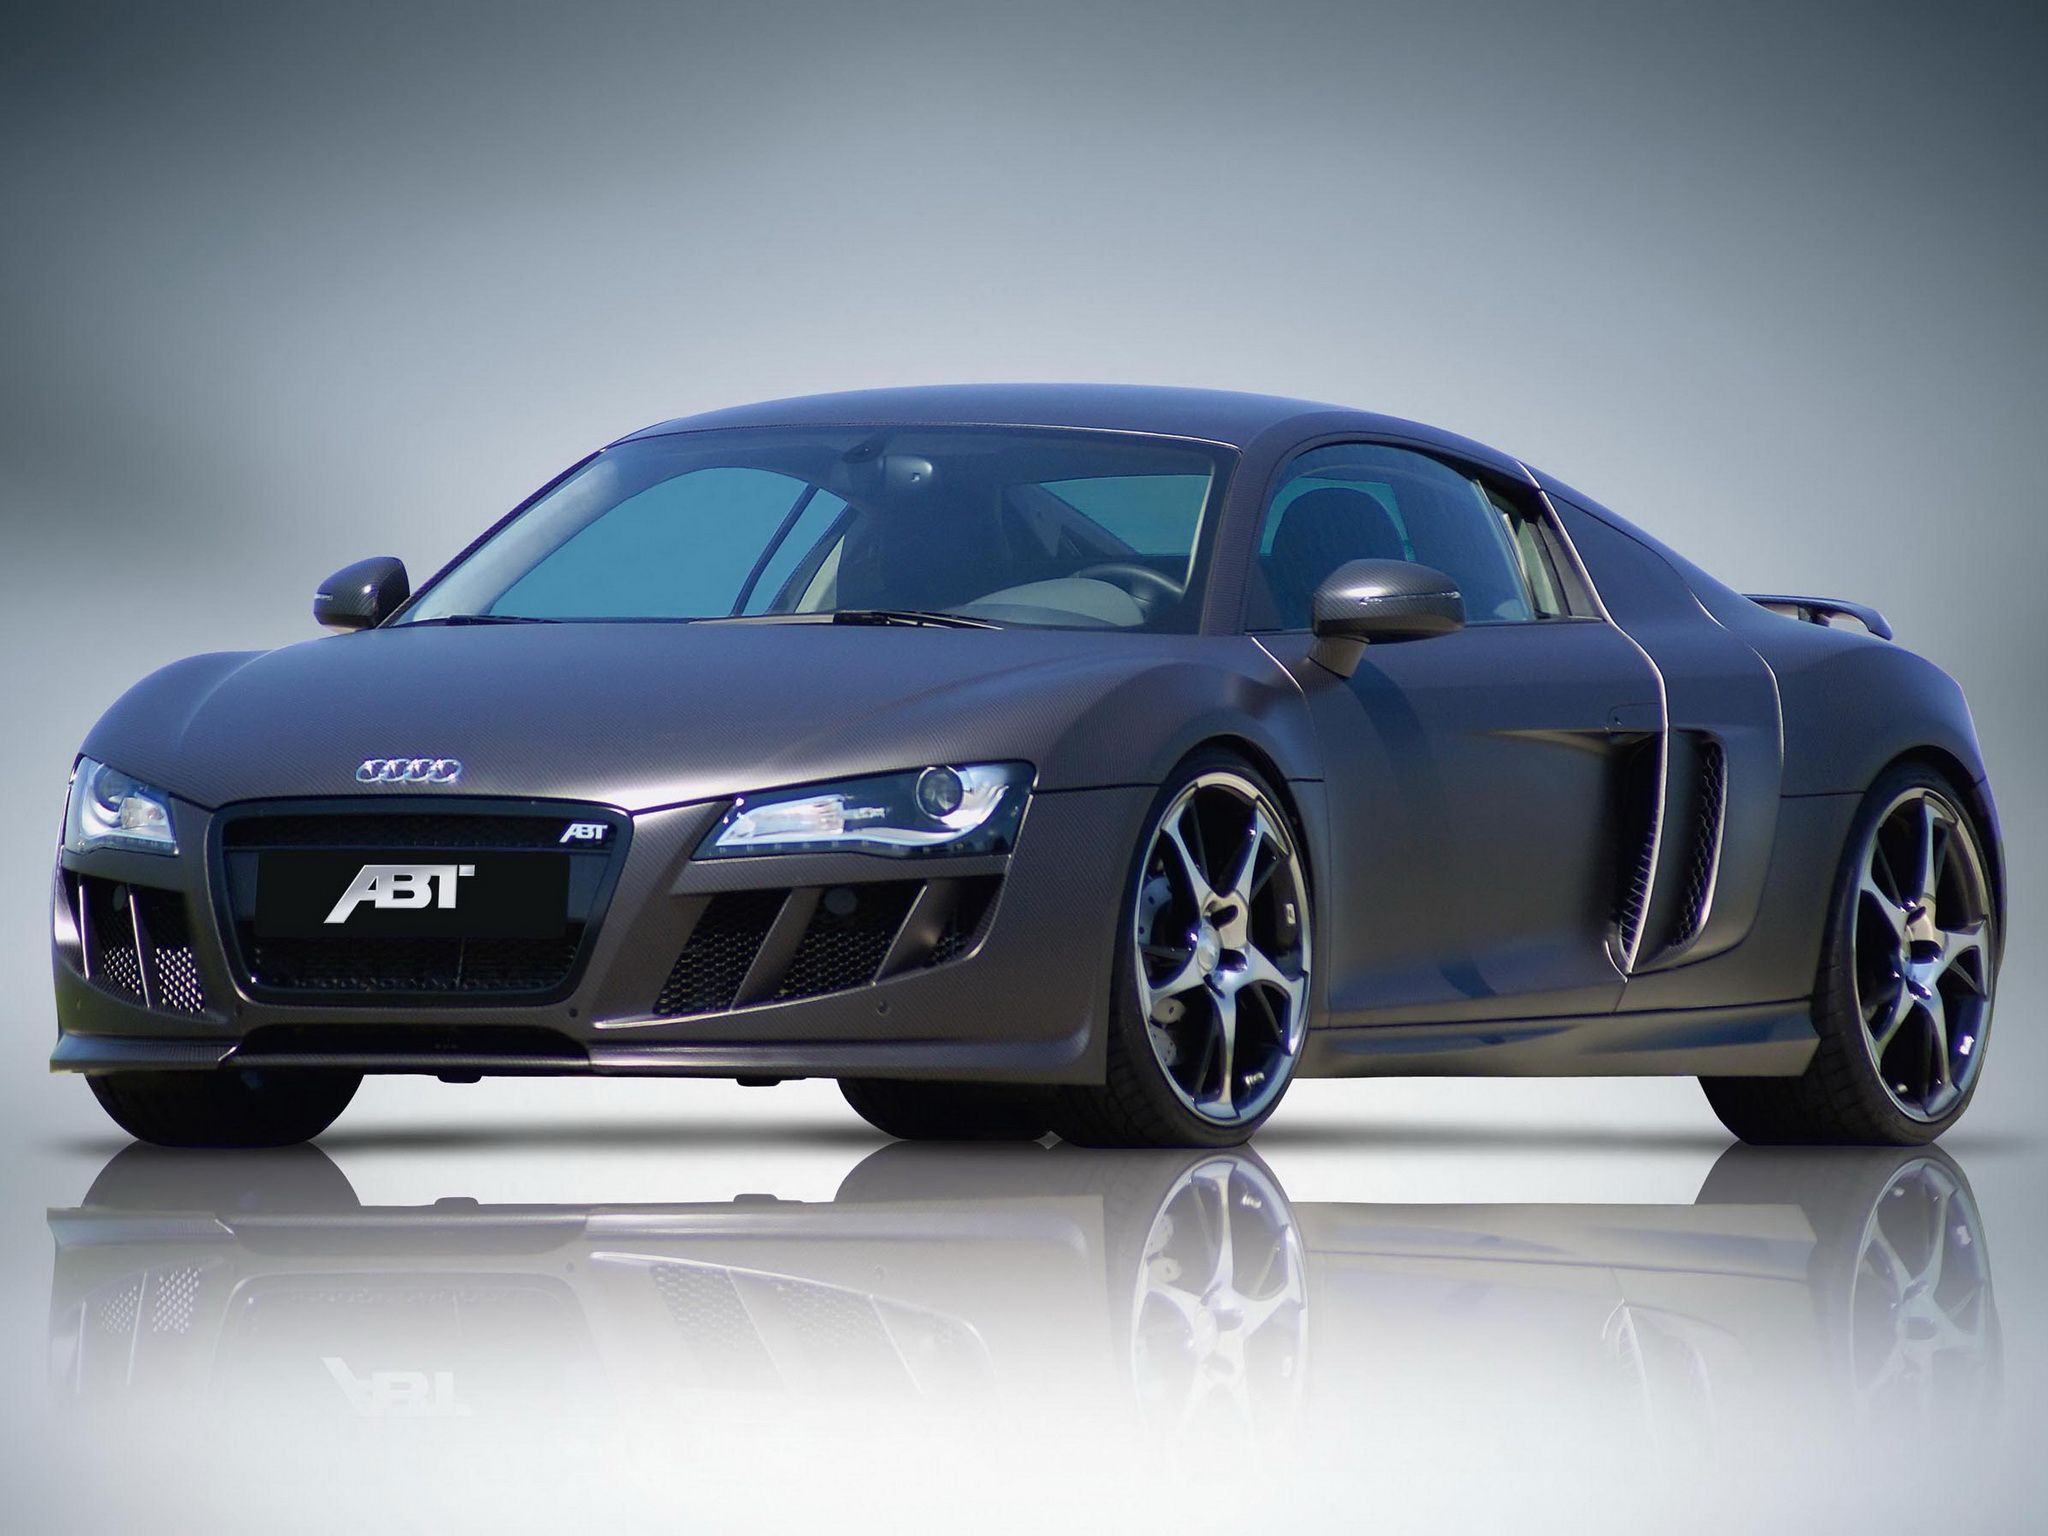 fond d cran hd voiture de sport cars audi car models audi cars et audi r8. Black Bedroom Furniture Sets. Home Design Ideas